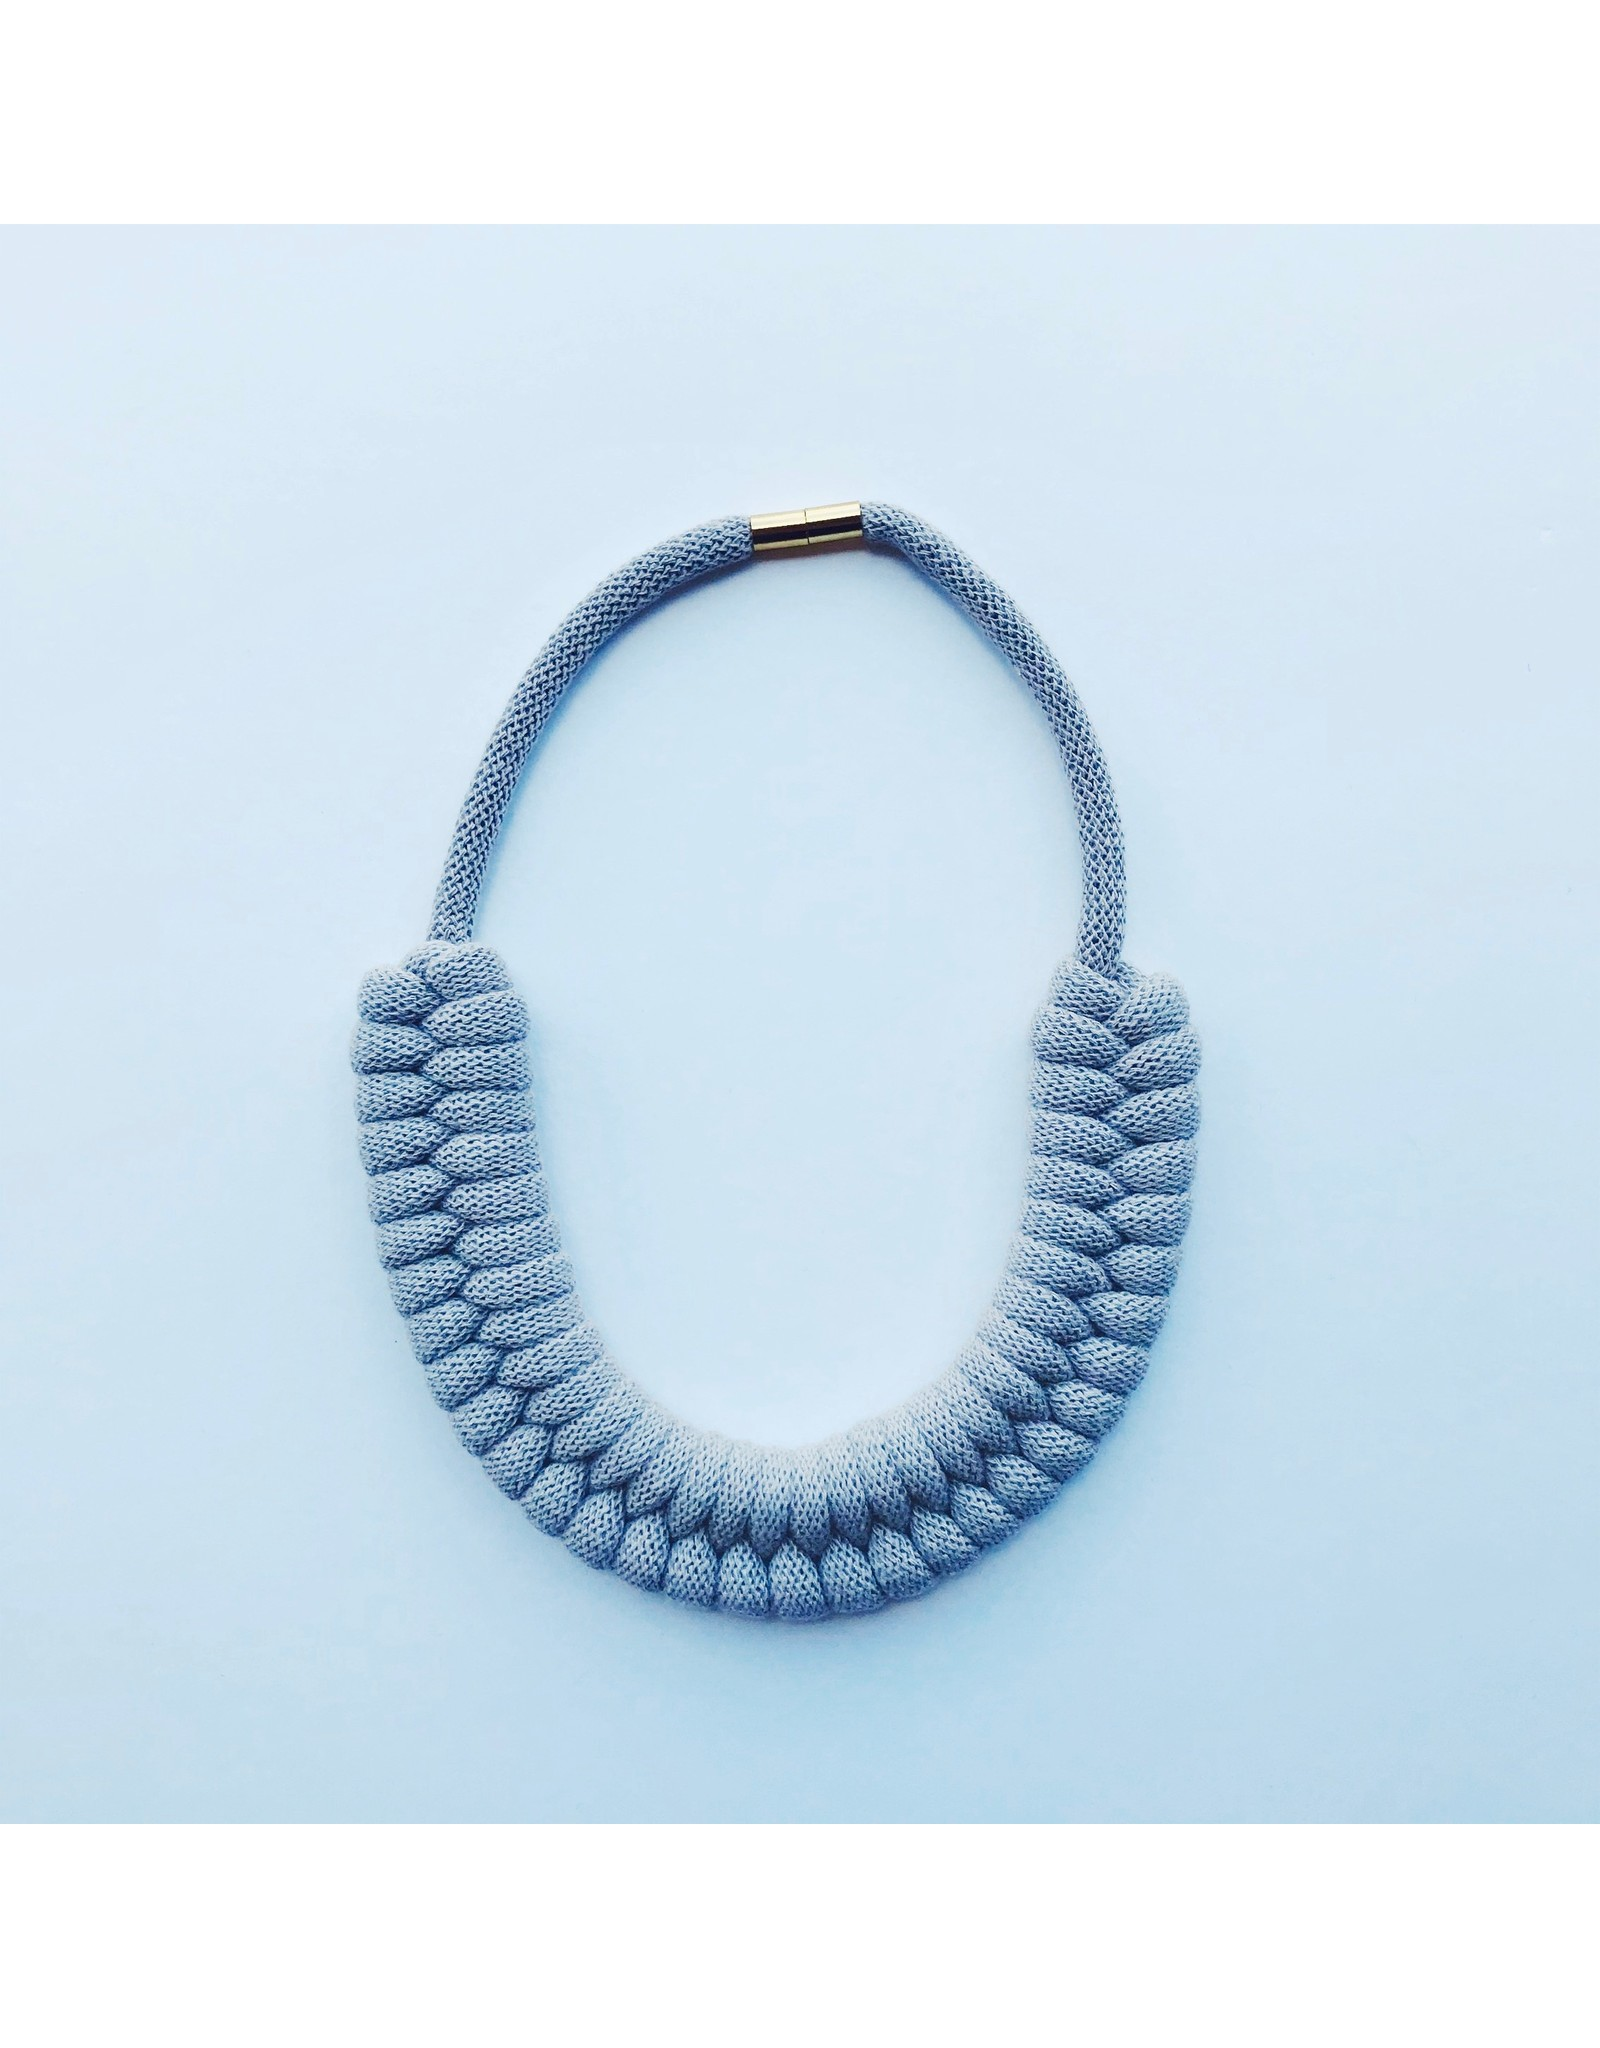 Cotton Rope Necklace